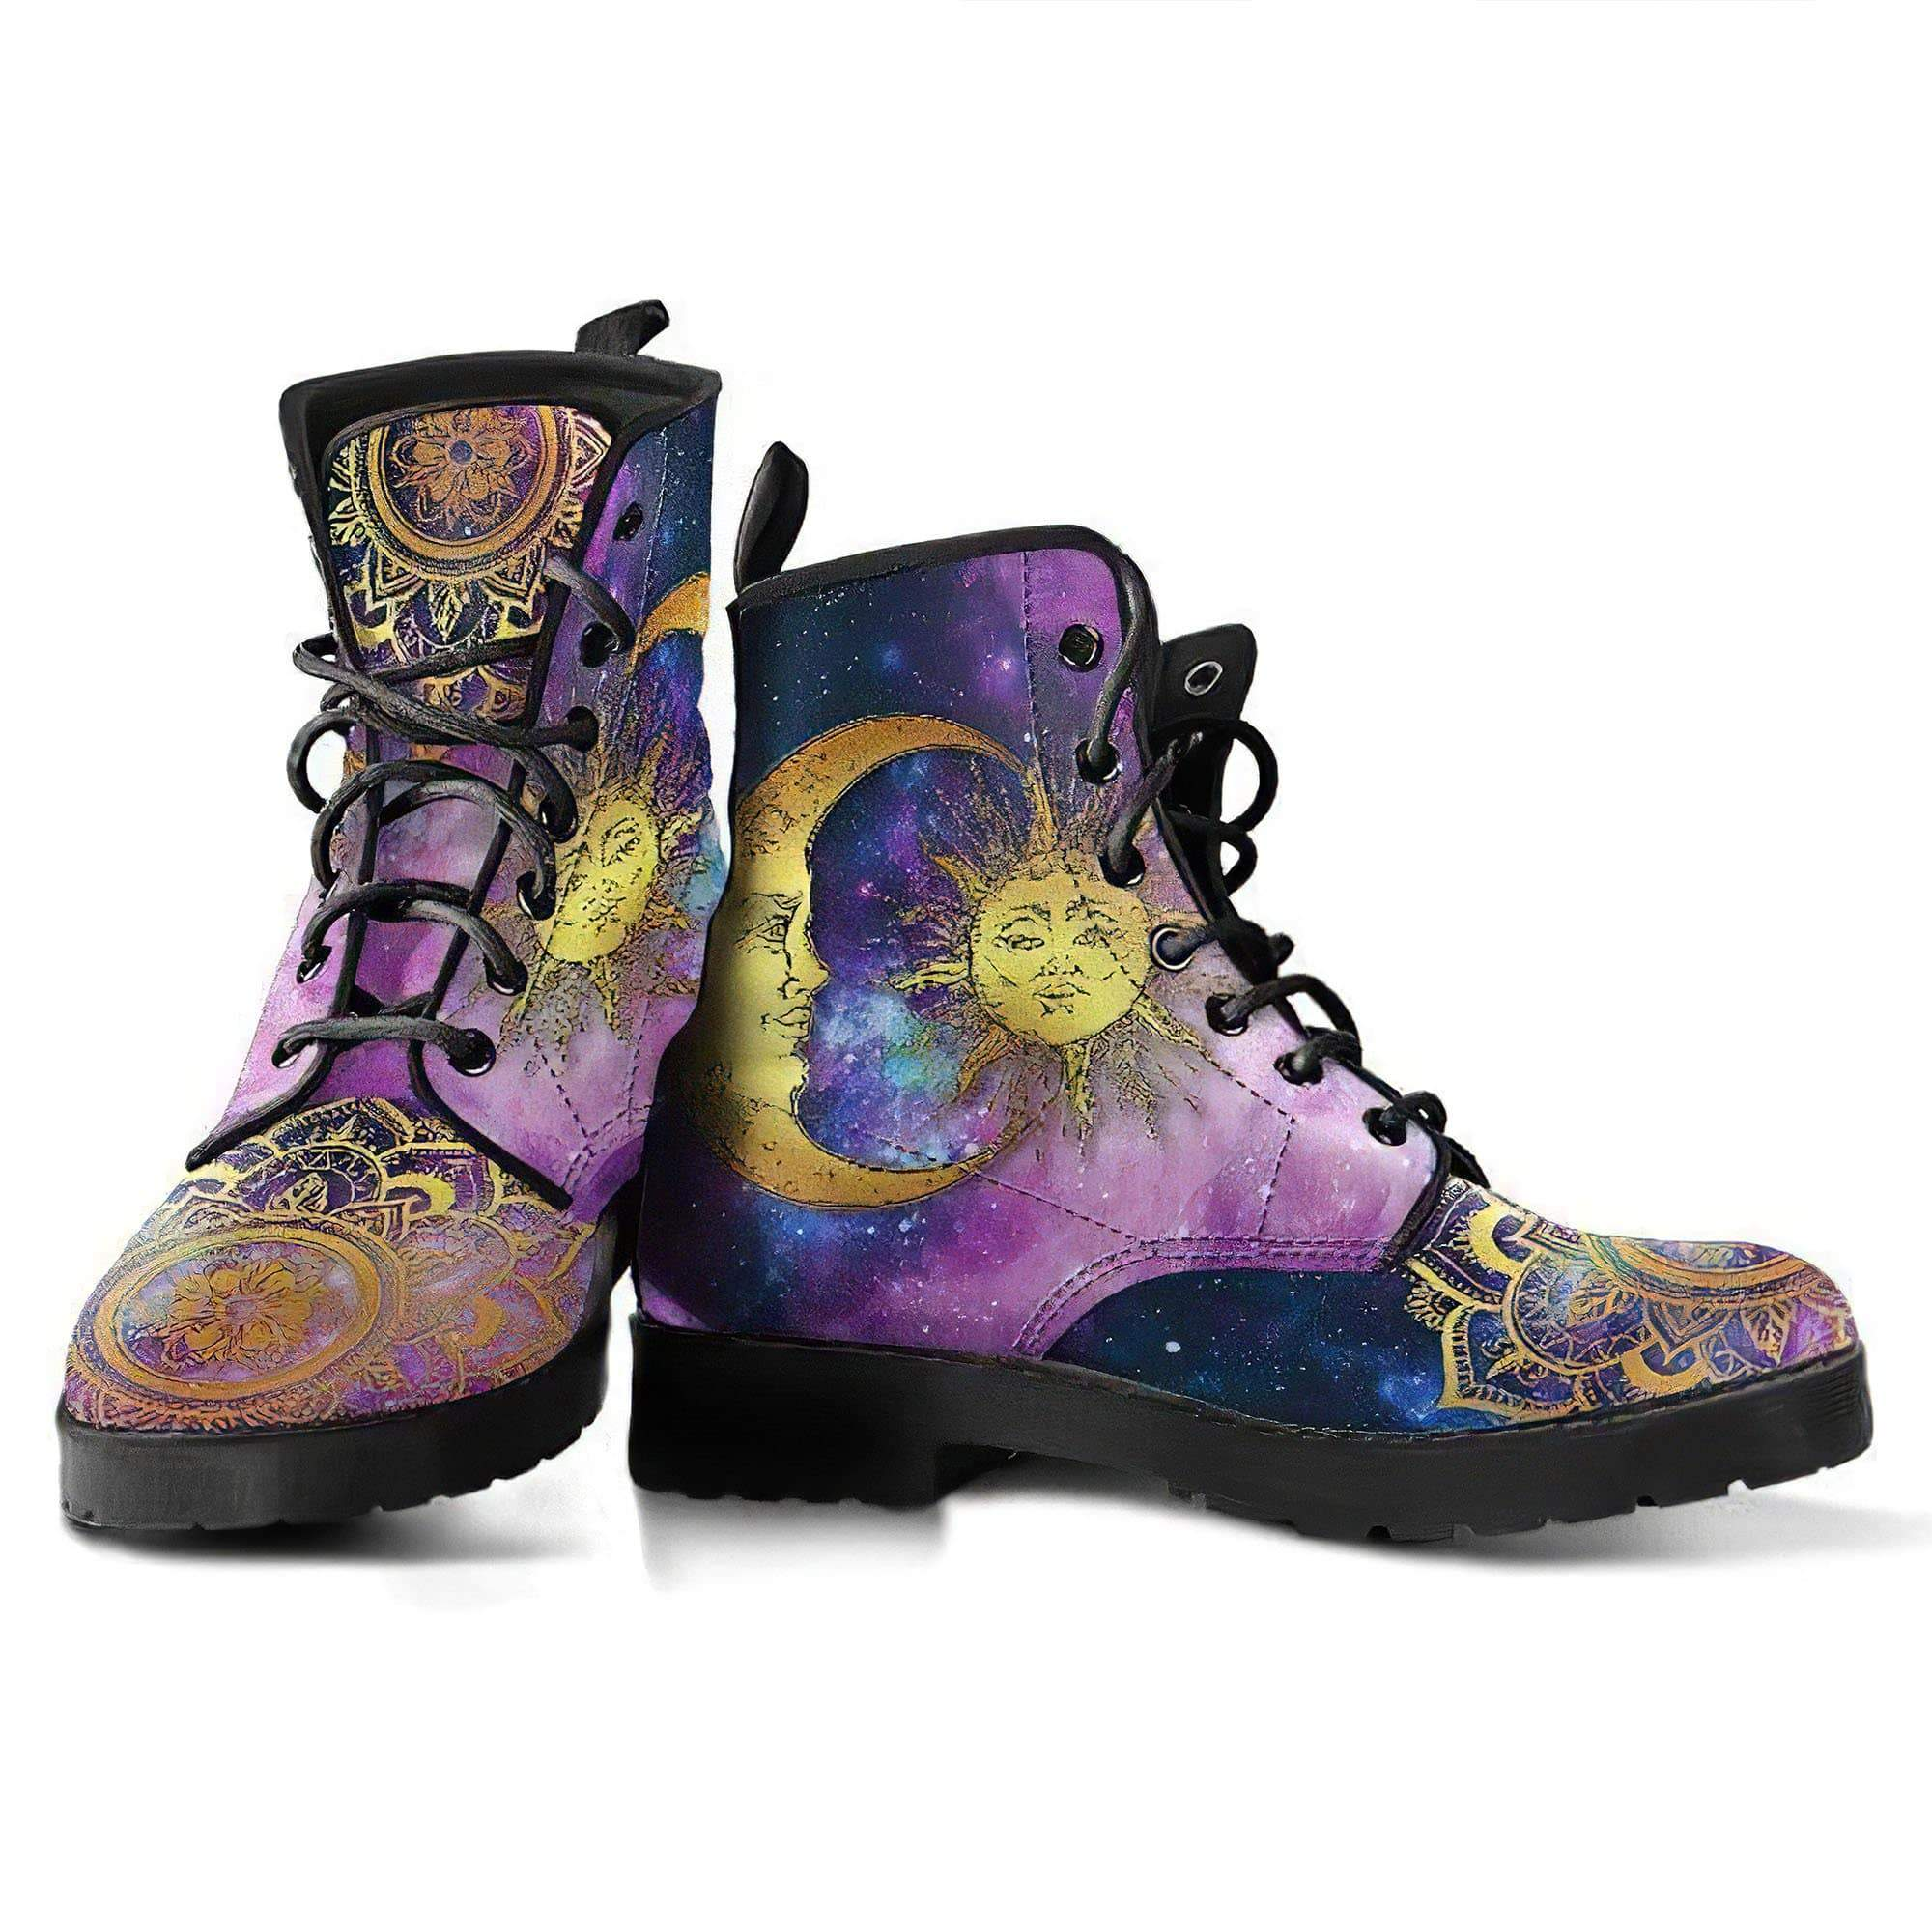 Sun and Moon Mandala Handcrafted Boots Women's Leather Boots